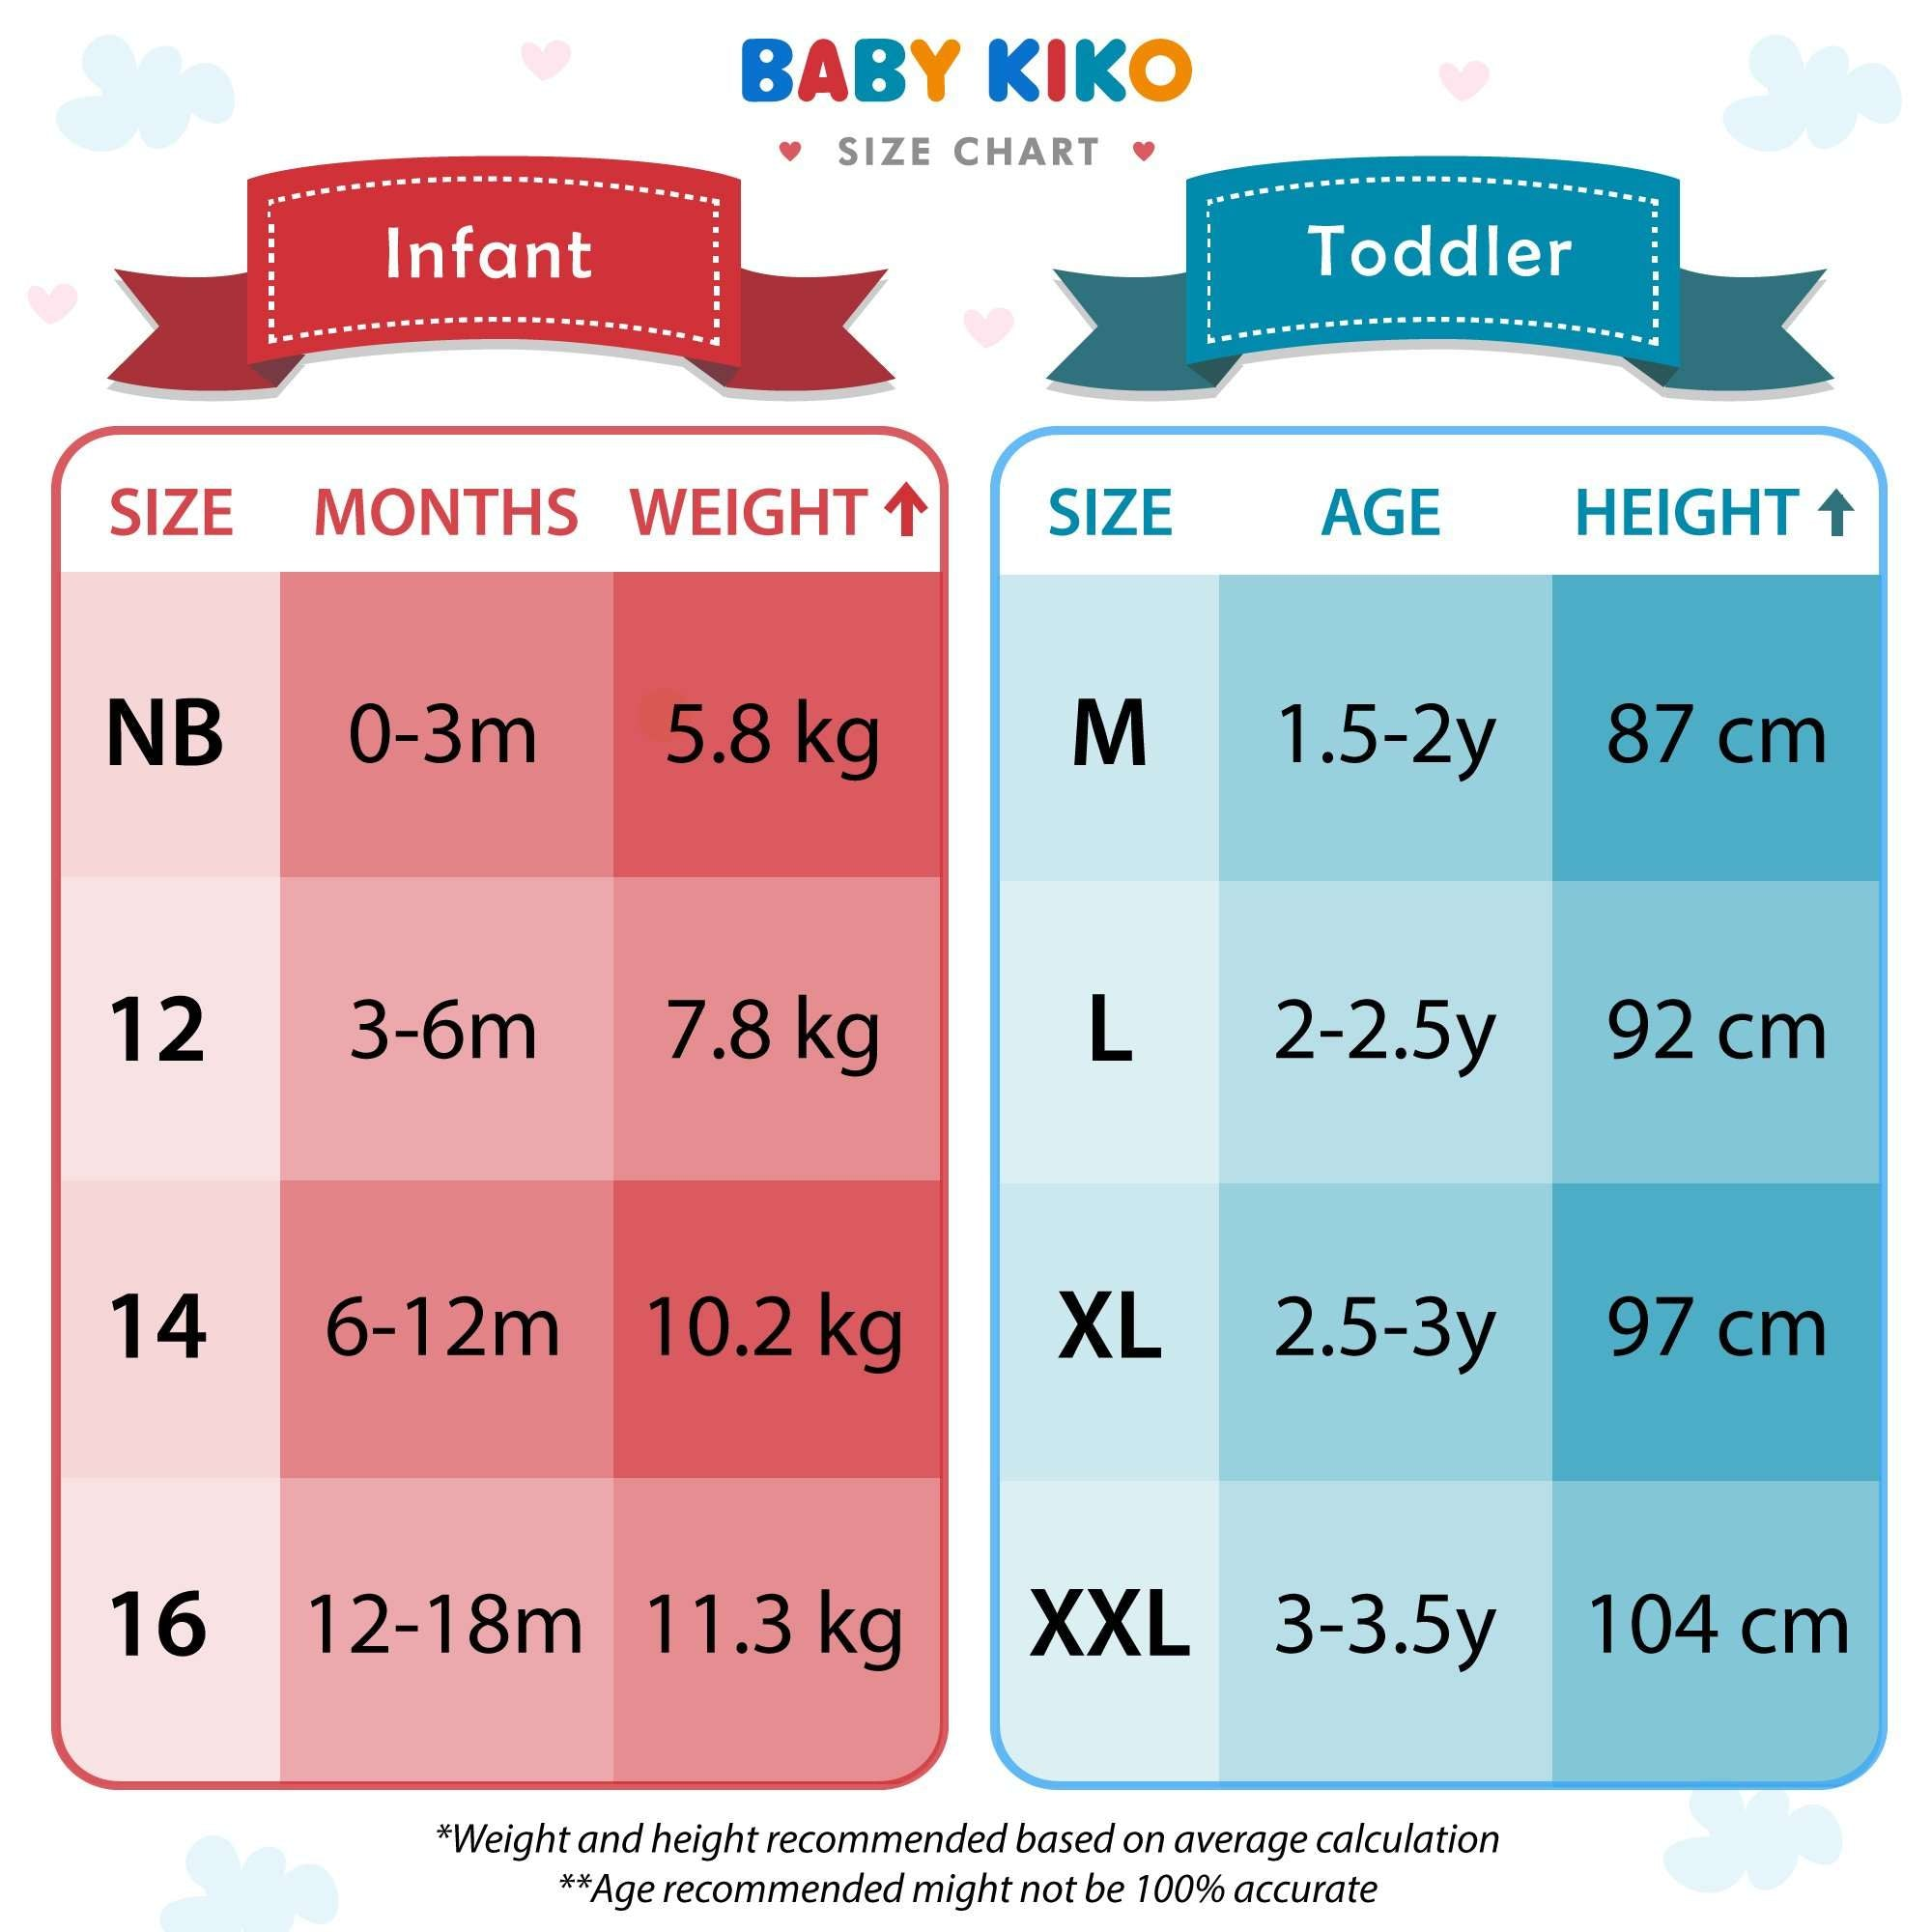 BABY KIKO BABY GIRL FASHION SHORT SLEEVE TEE - GREY B924001-1109-G5 : Buy Baby KIKO online at CMG.MY